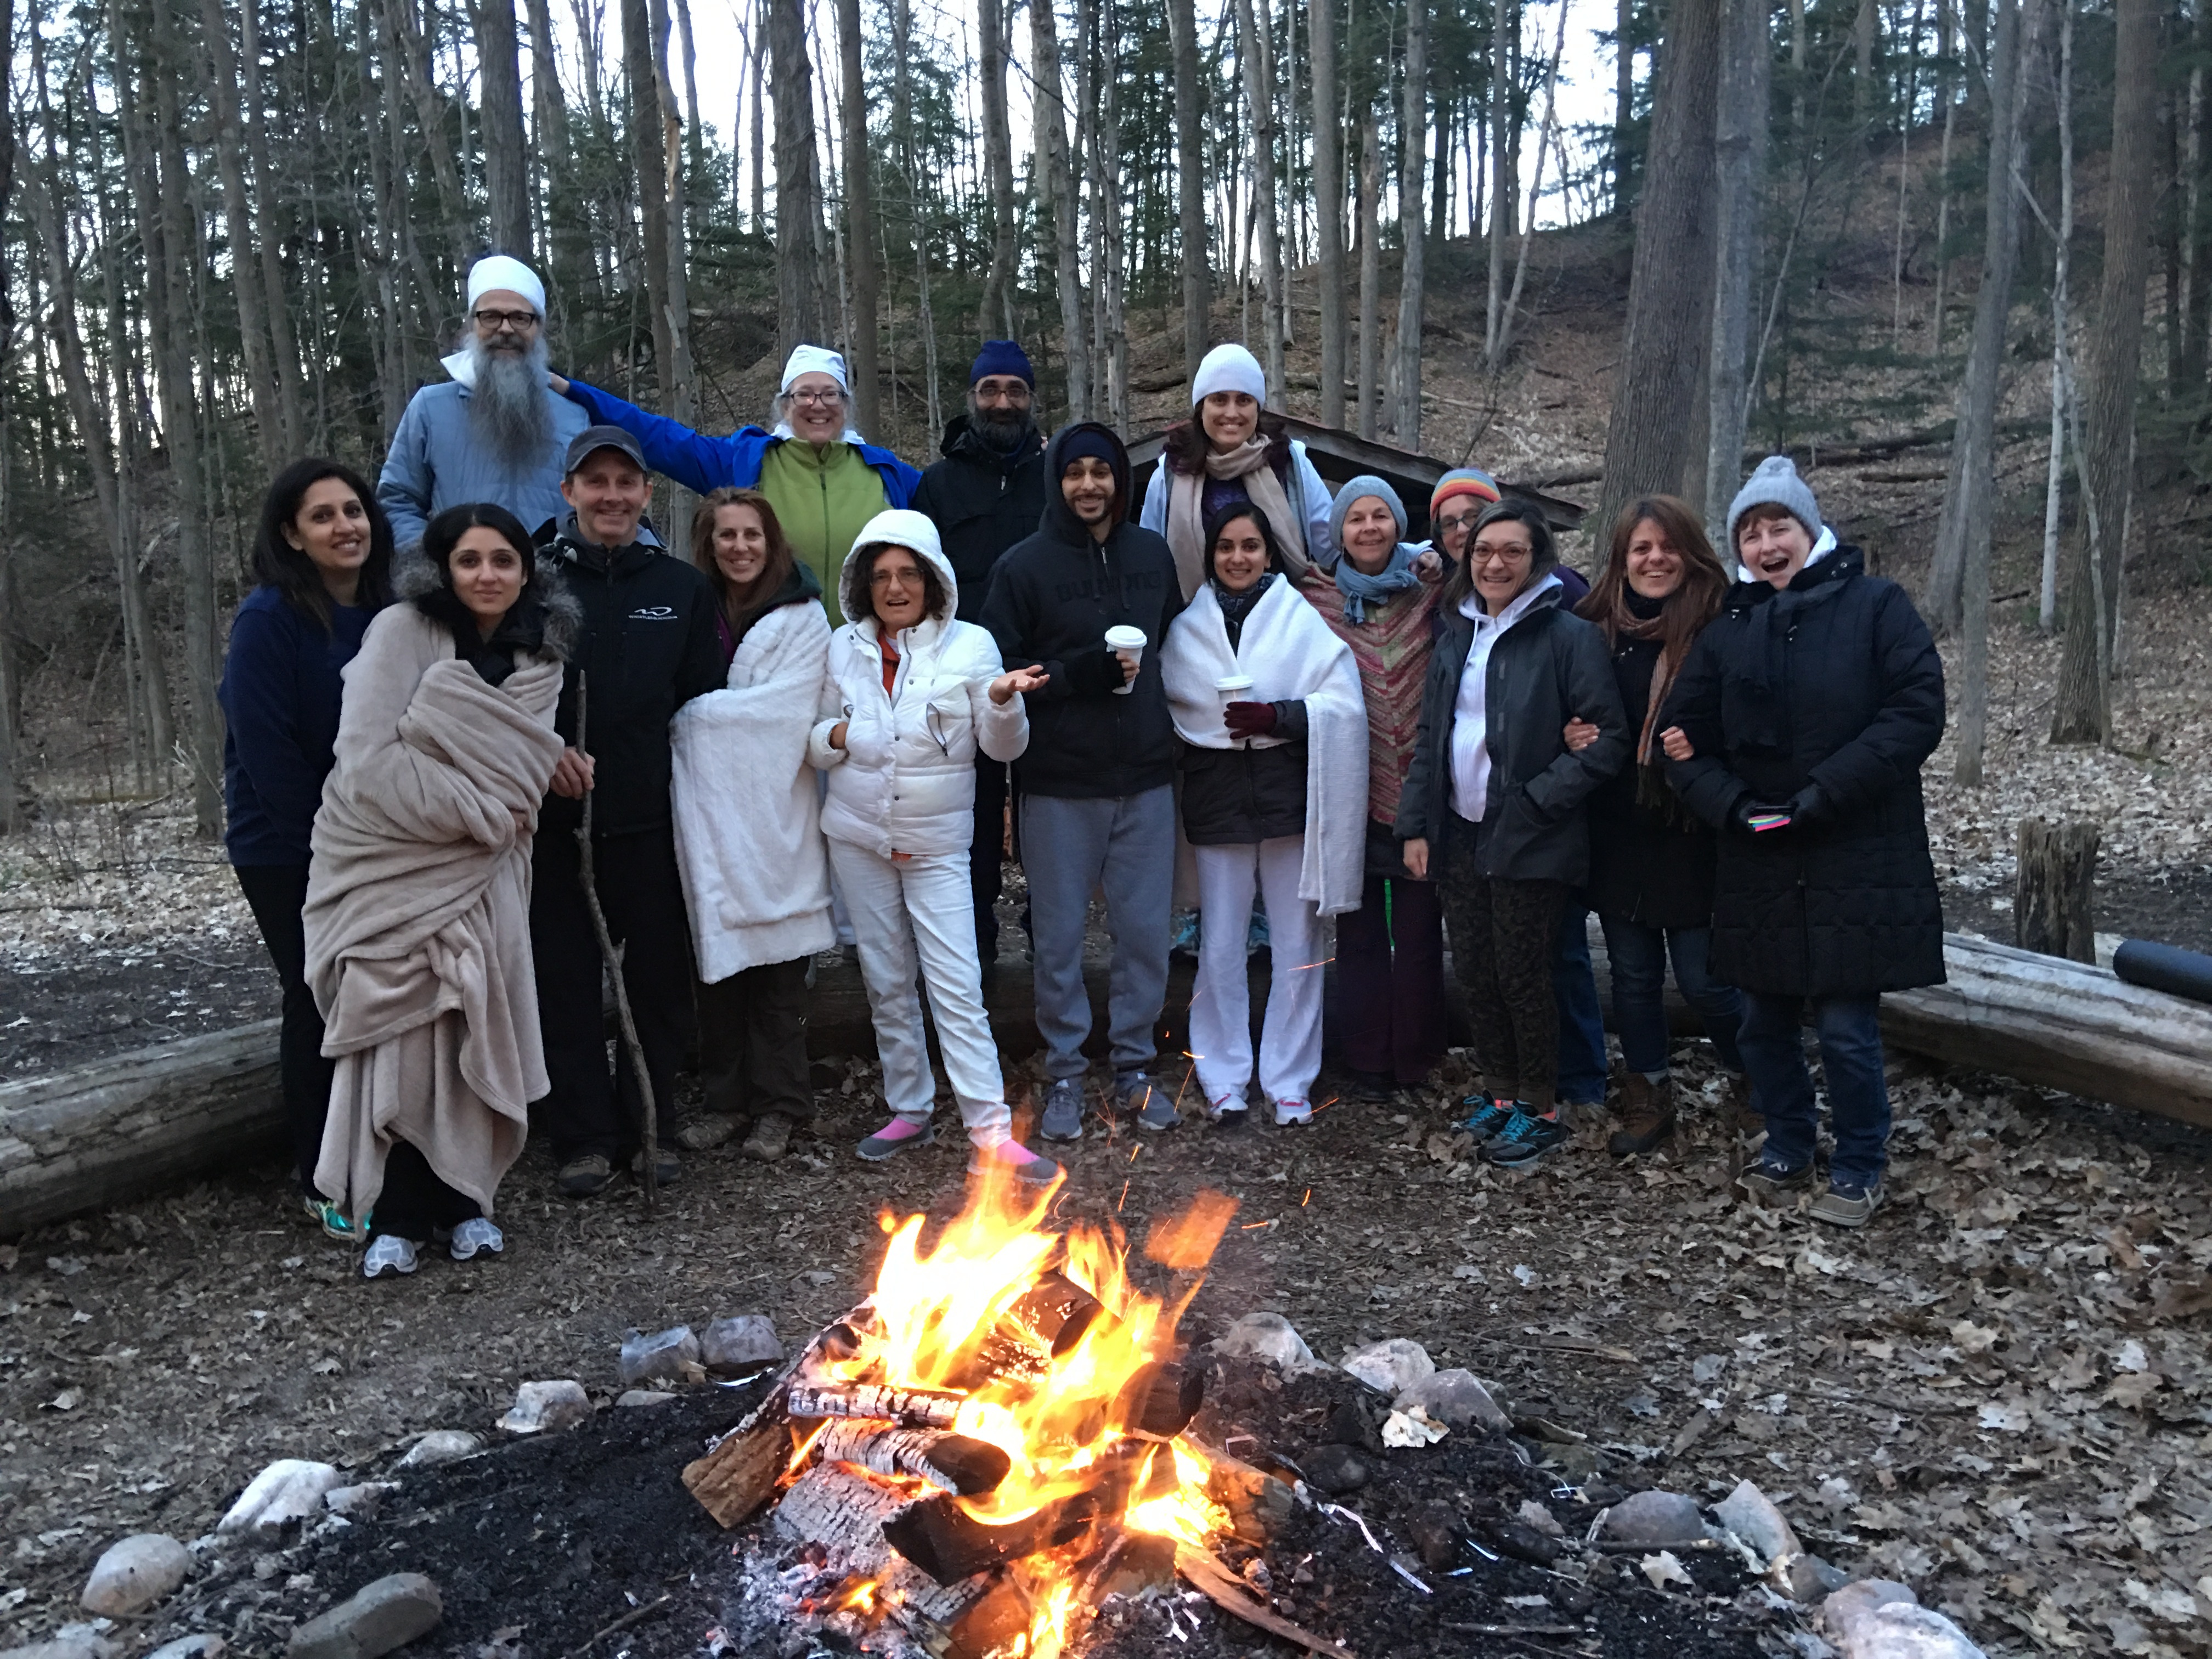 People on a Yoga Retreat in Ontario